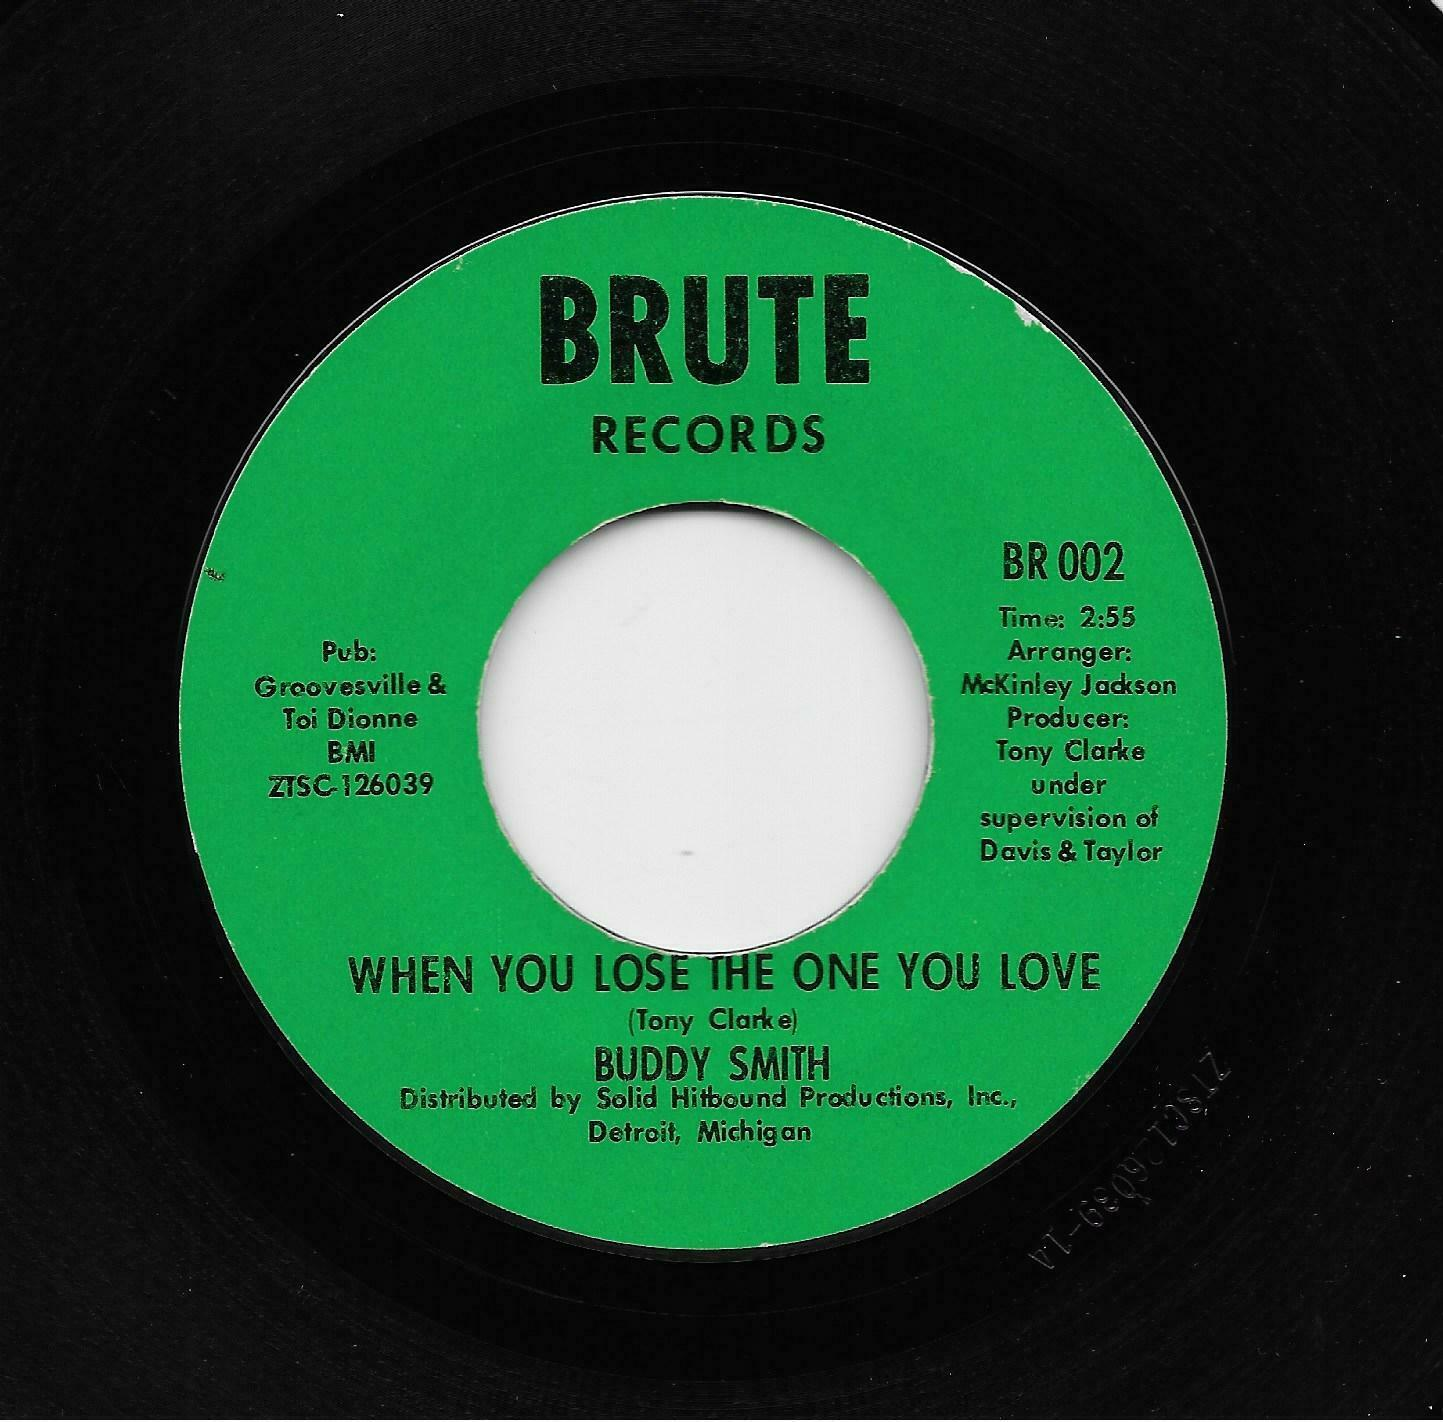 Buddy Smith - When You Lose The One You Love / You Get What You Deserve (45) 002